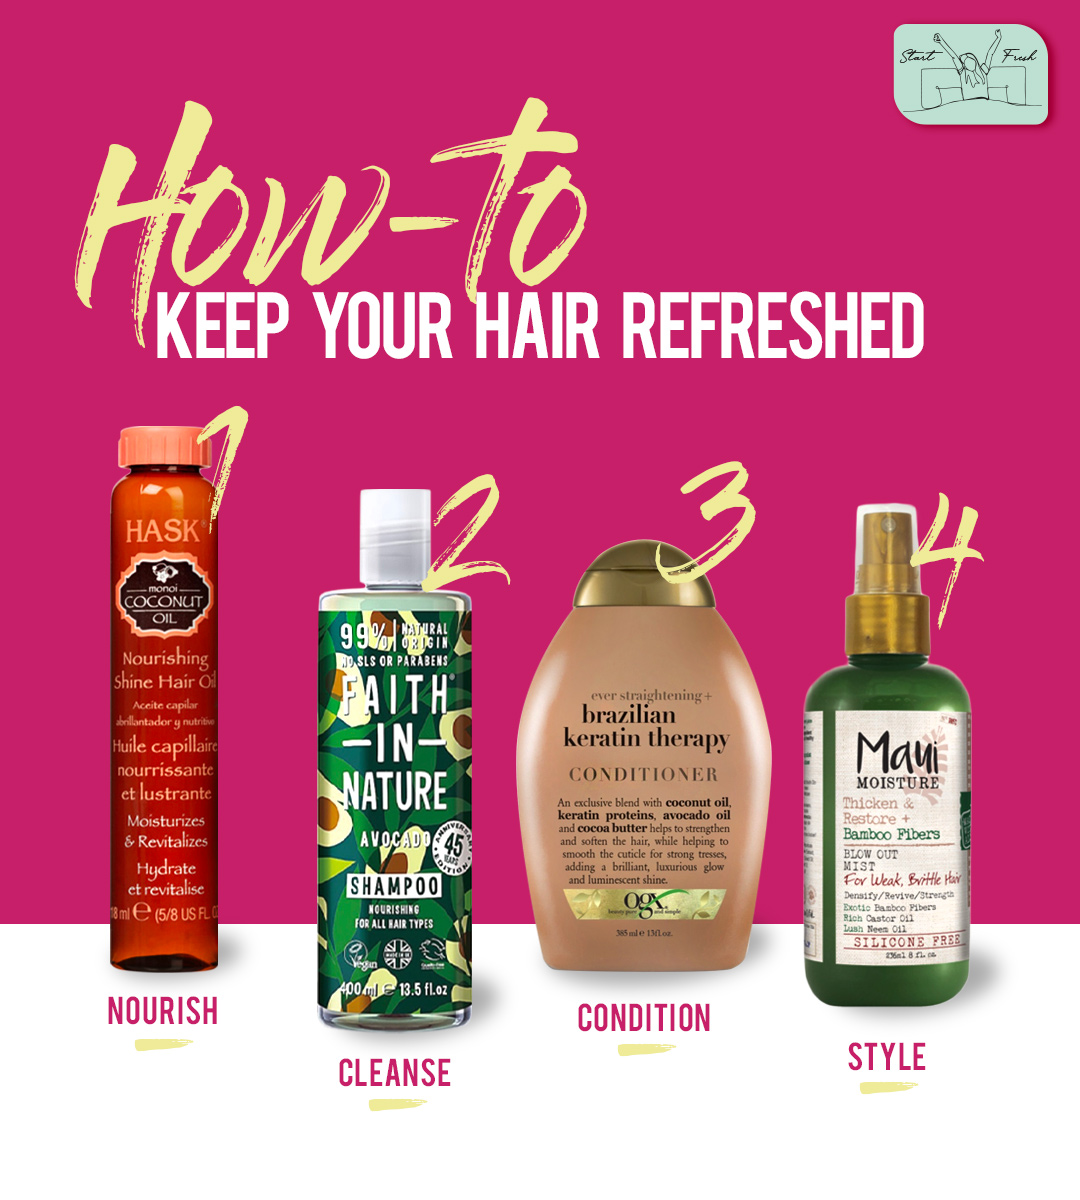 Hair Care = Self Love ❣ A simple routine to keep your hair in check and provide them the much-needed nourishment! Products available in-stores and online https://t.co/GUoOLTNUj0